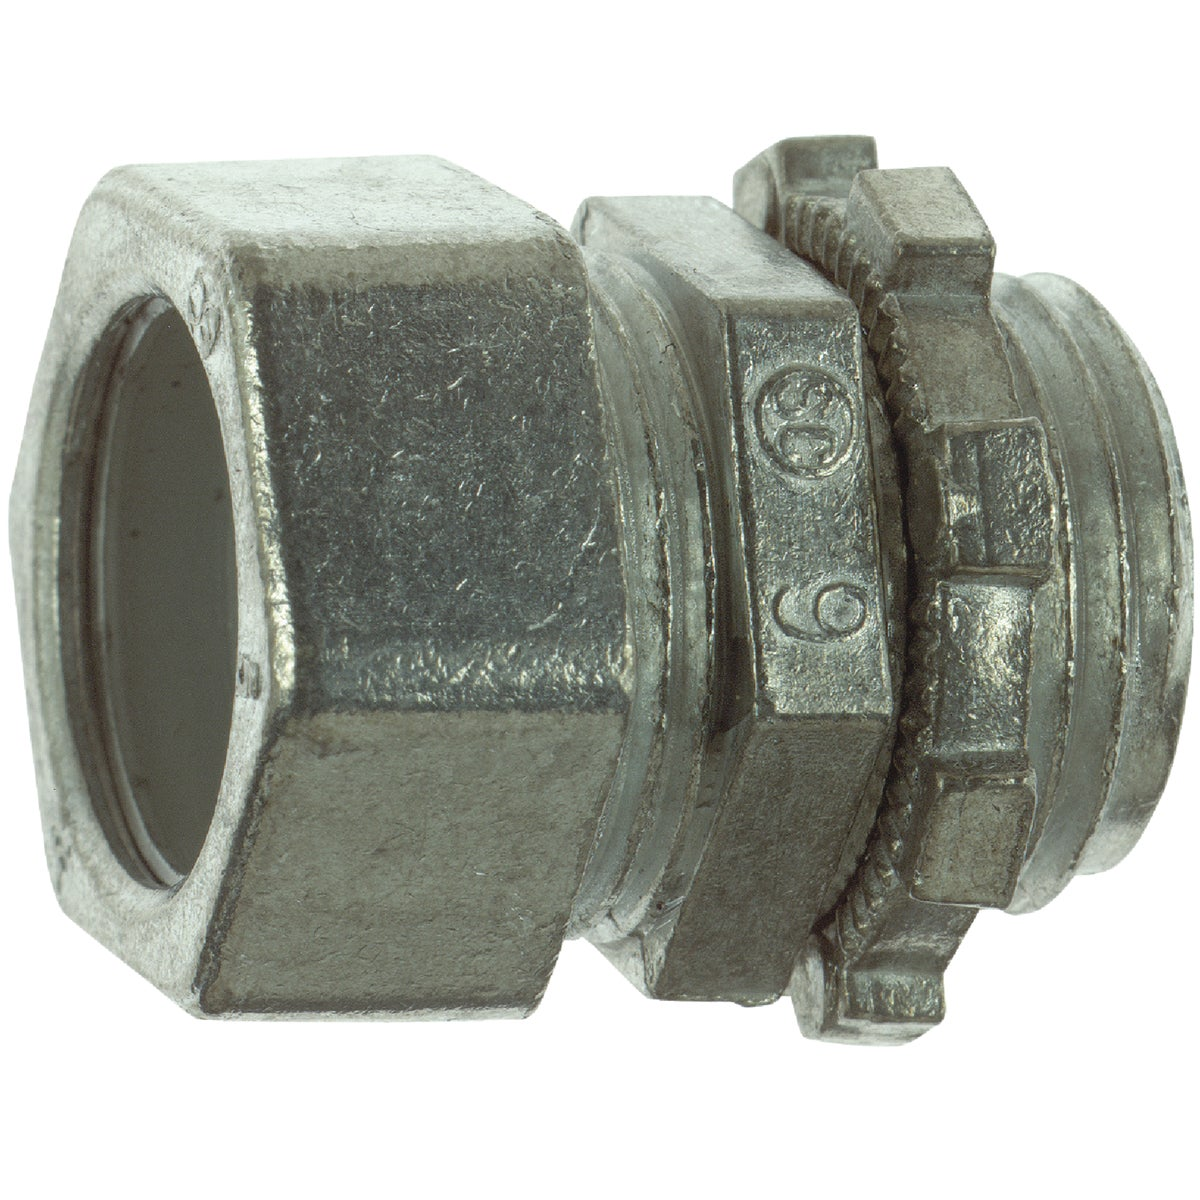 "3/4"" EMT CONNECTOR - TC212SC1 by Thomas & Betts"